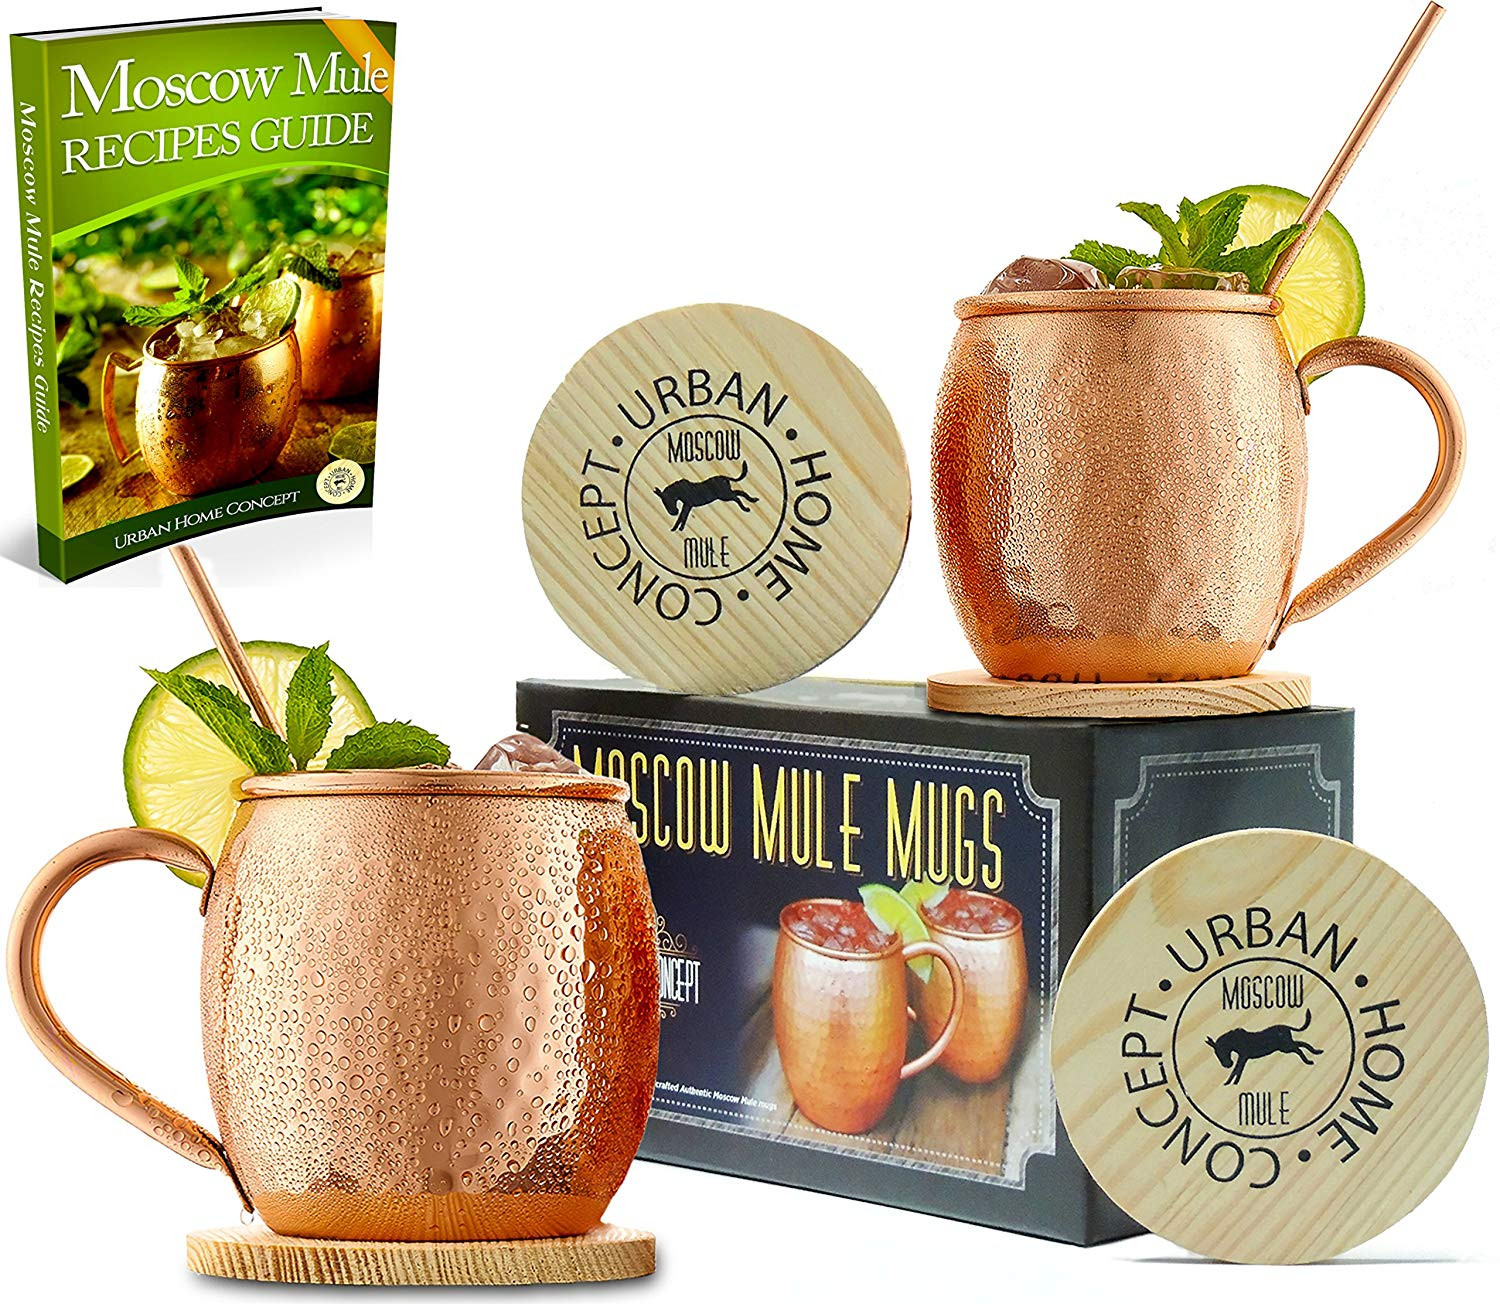 mint julep vases wholesale of amazon com moscow mule gift set mule mugs made of 100 pure for mule gift set mule mugs made of 100 pure copper moscow mule mug set includes copper straws coasters moscow mule recipe ebook copper cups make